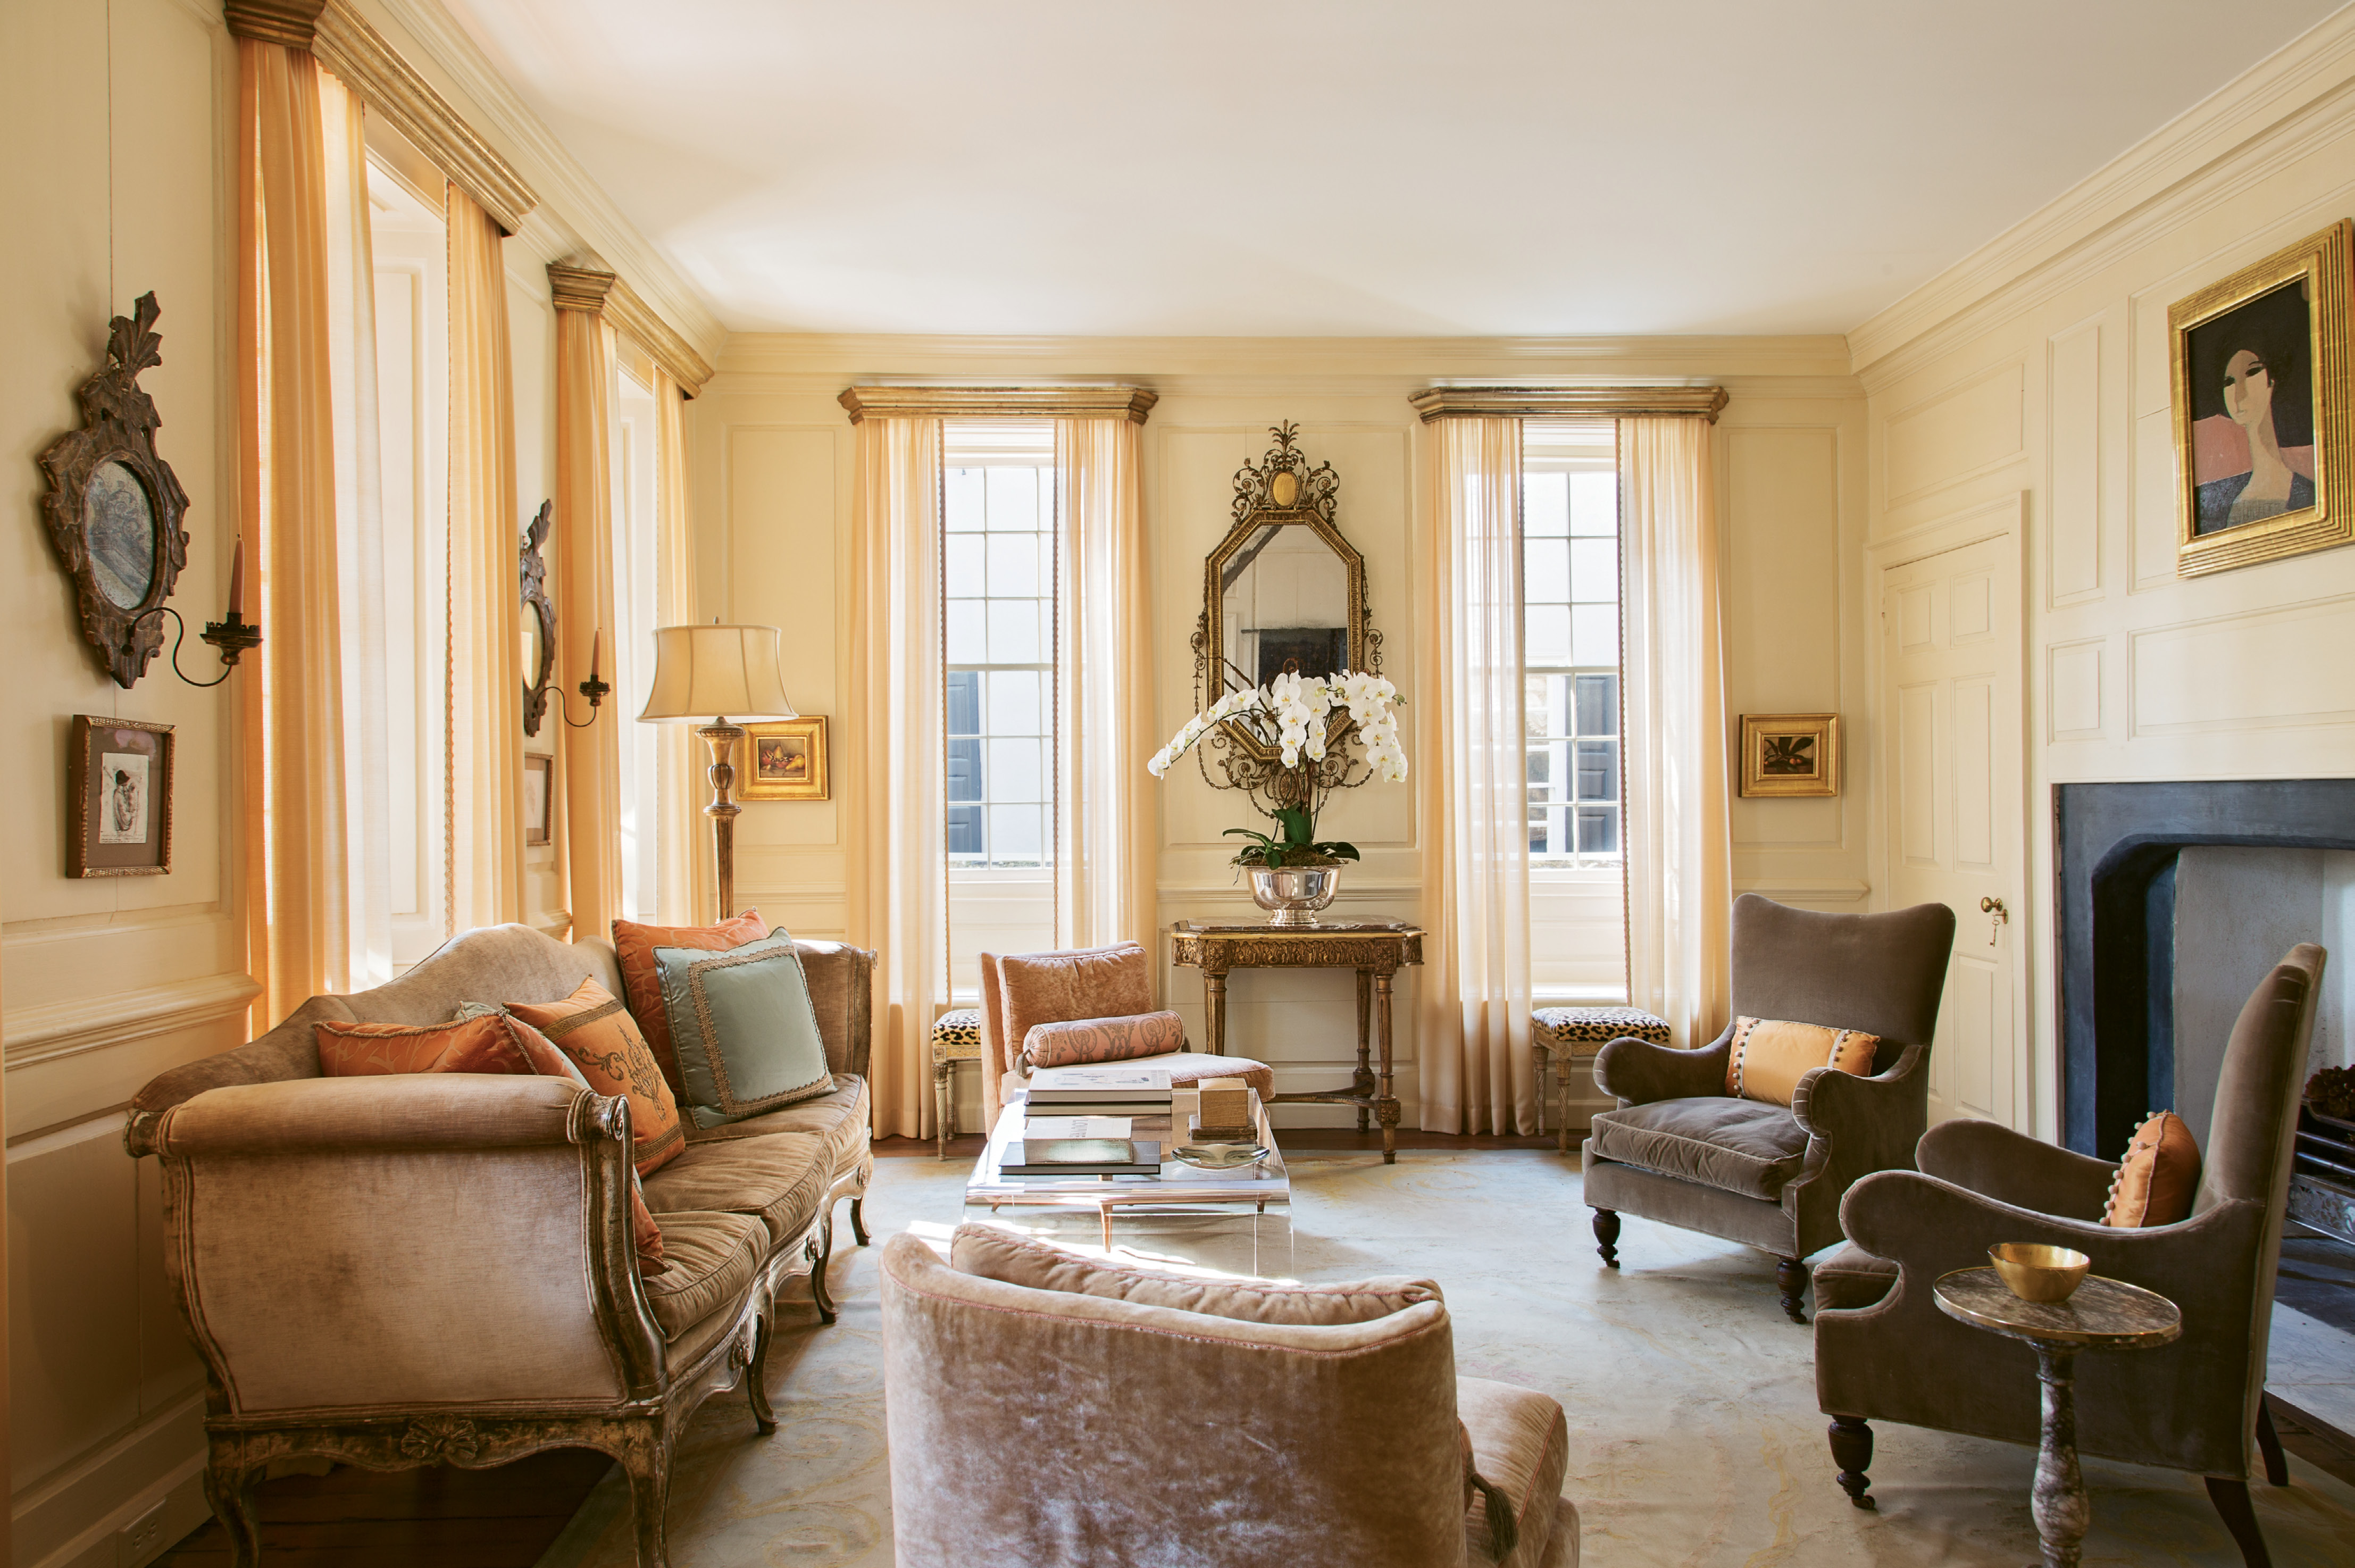 """A 1968 portrait by French painter André Minaux sets the tone for the first-floor drawing room. """"She has that little bit of pink,"""" says Ann. """"We put her right over the classical Georgian fireplace and suddenly the room got very feminine."""" Sketches by Ben Long and two still lifes by Jill Hooper round out the room's luxe vibe."""